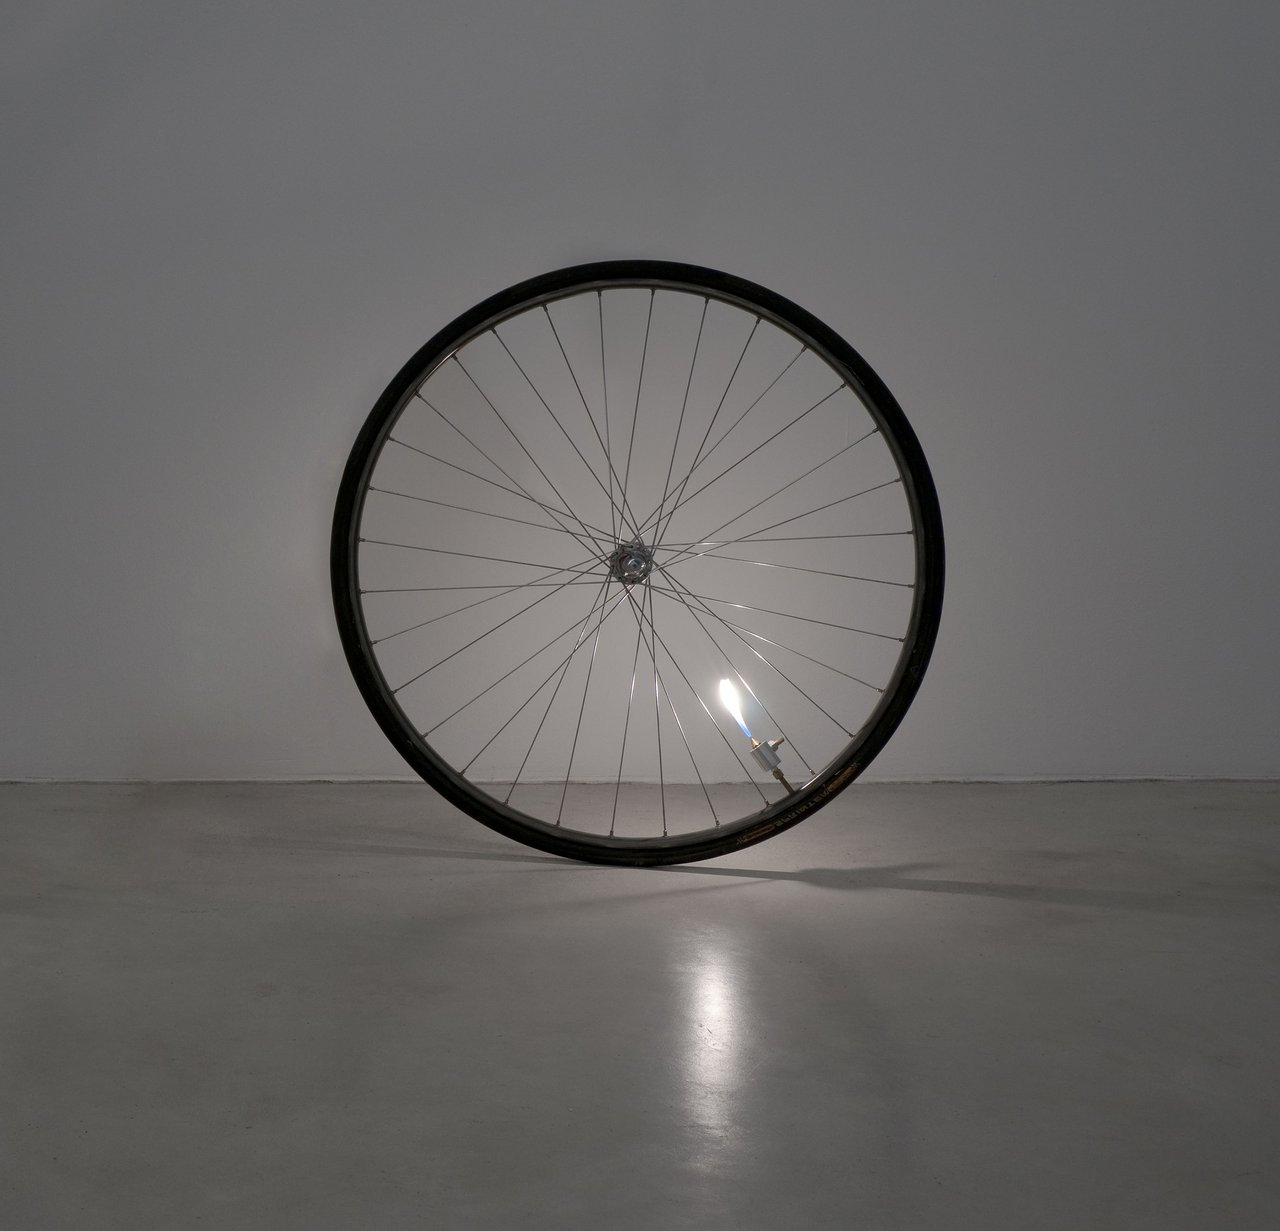 Ariel Schlesinger: Untitled (bicycle wheel)